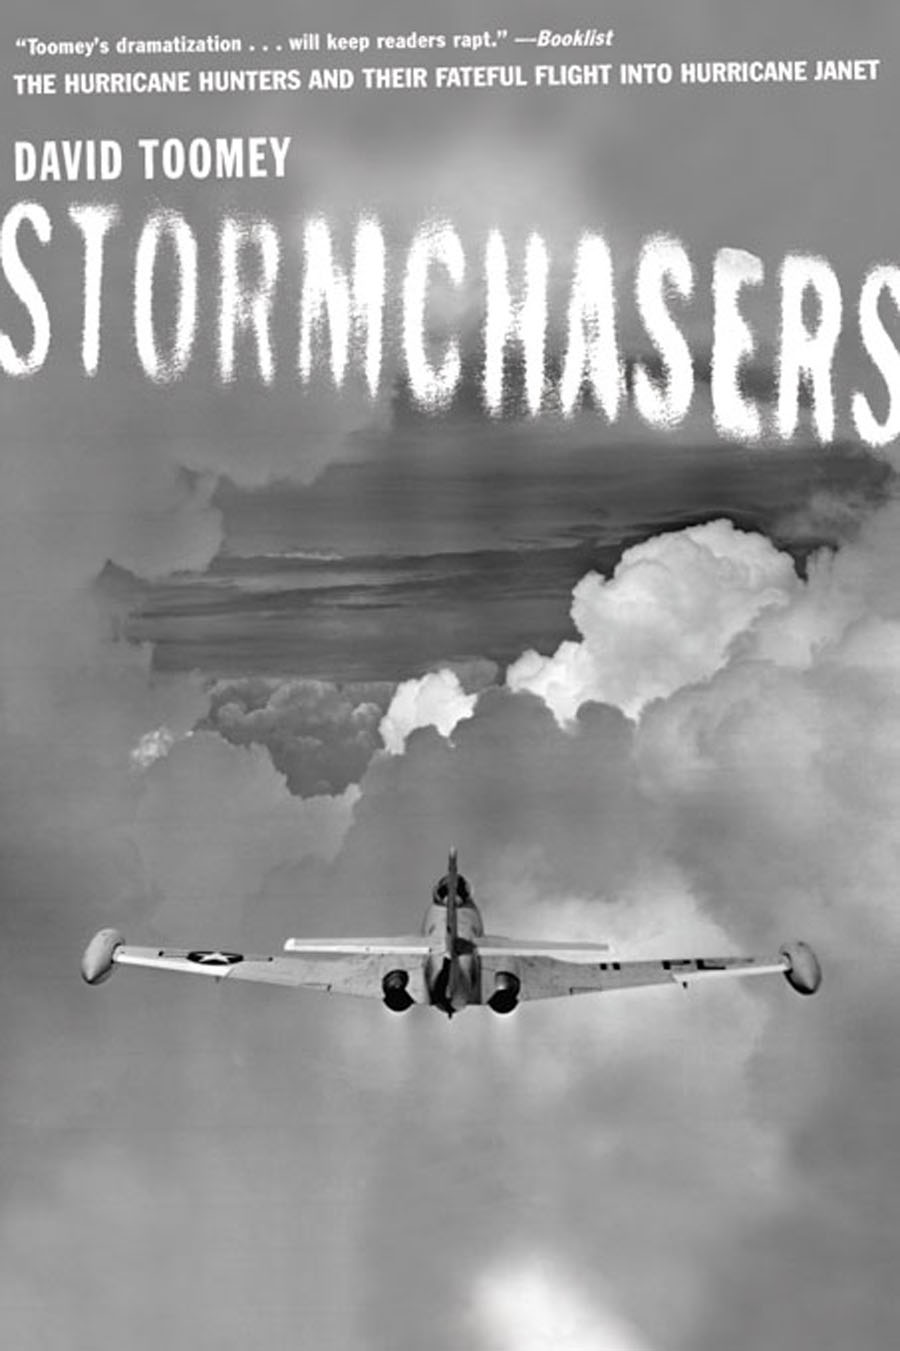 Stormchasers: The Hurricane Hunters and Their Fateful Flight into Hurricane Janet By: David Toomey